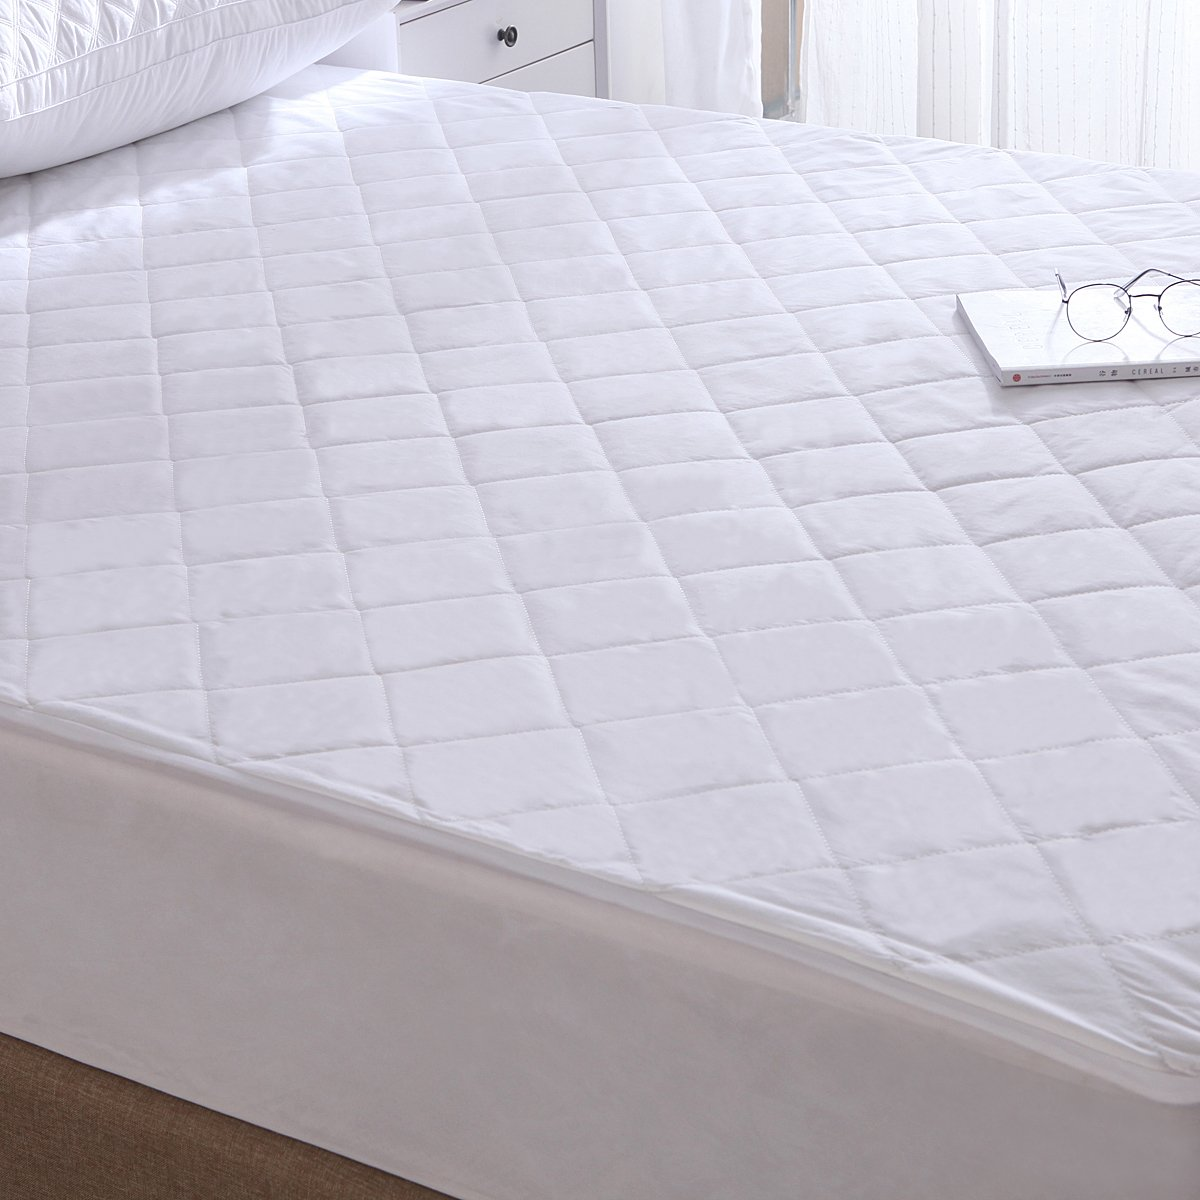 Exclusivo Mezcla 100% Cotton Quilted Bed Cover Fitted Twin Size Mattress Protector/Cover(39'' x 75'')- Waterproof, Noiseless& Hypoallergenic by Exclusivo Mezcla (Image #3)